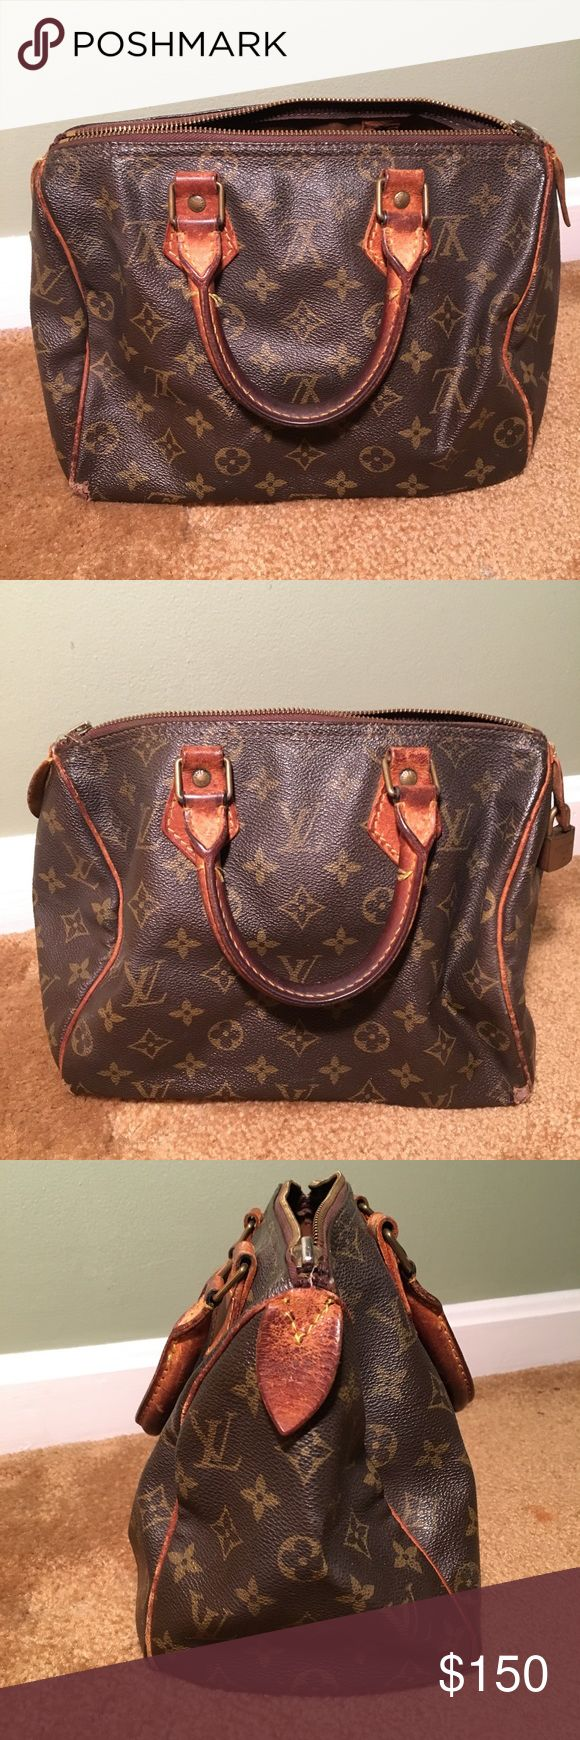 VINTAGE LOUIS VUITTON 'Speedy 25' 100% AUTHENTIC LOUIS VUITTON Speedy 25  Visible signs of wear (all 4 corners, zipper attachment missing but still zips, handles turned, stains inside) Louis Vuitton Bags